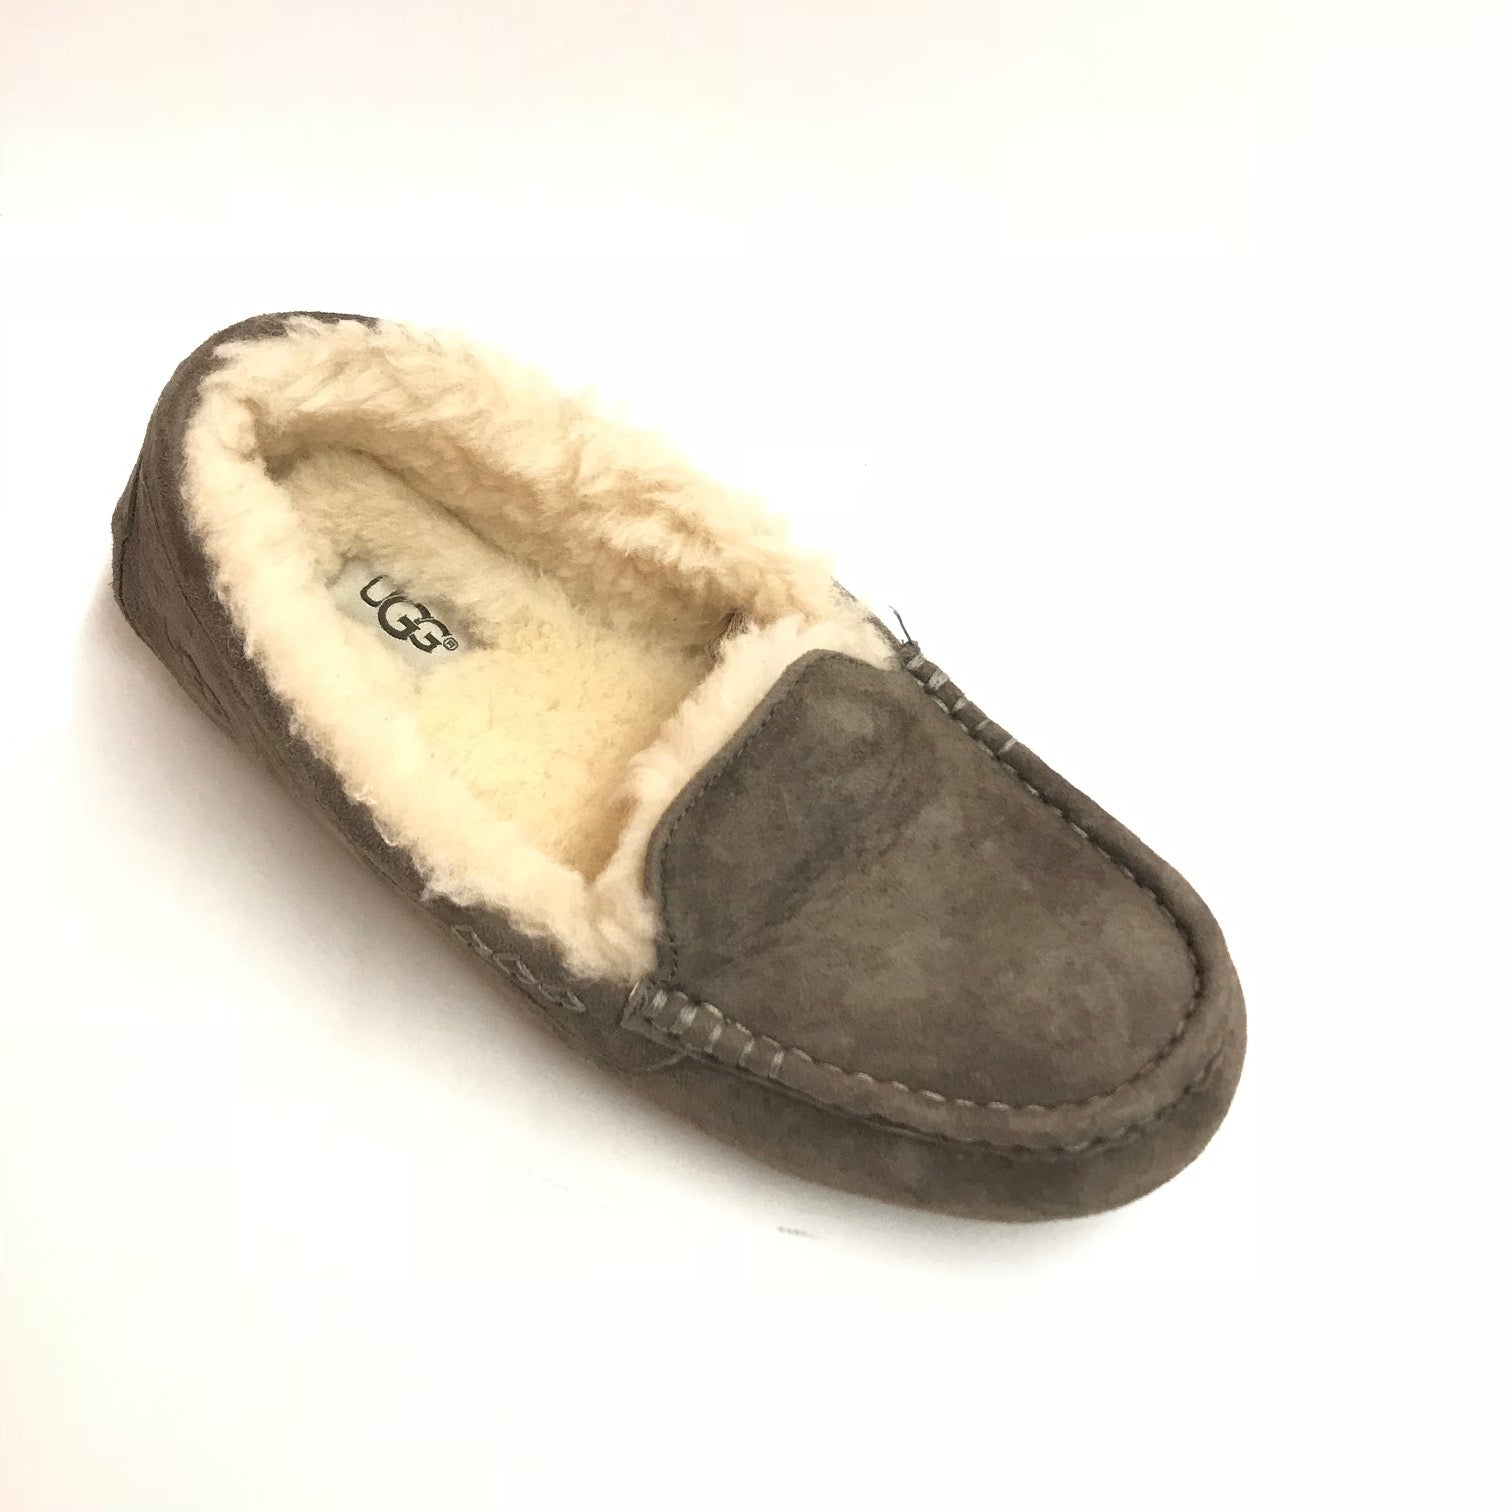 5eaef3c64f6 Women's UGG | Ansley Wool Slipper - Size 7 only | Slate Grey